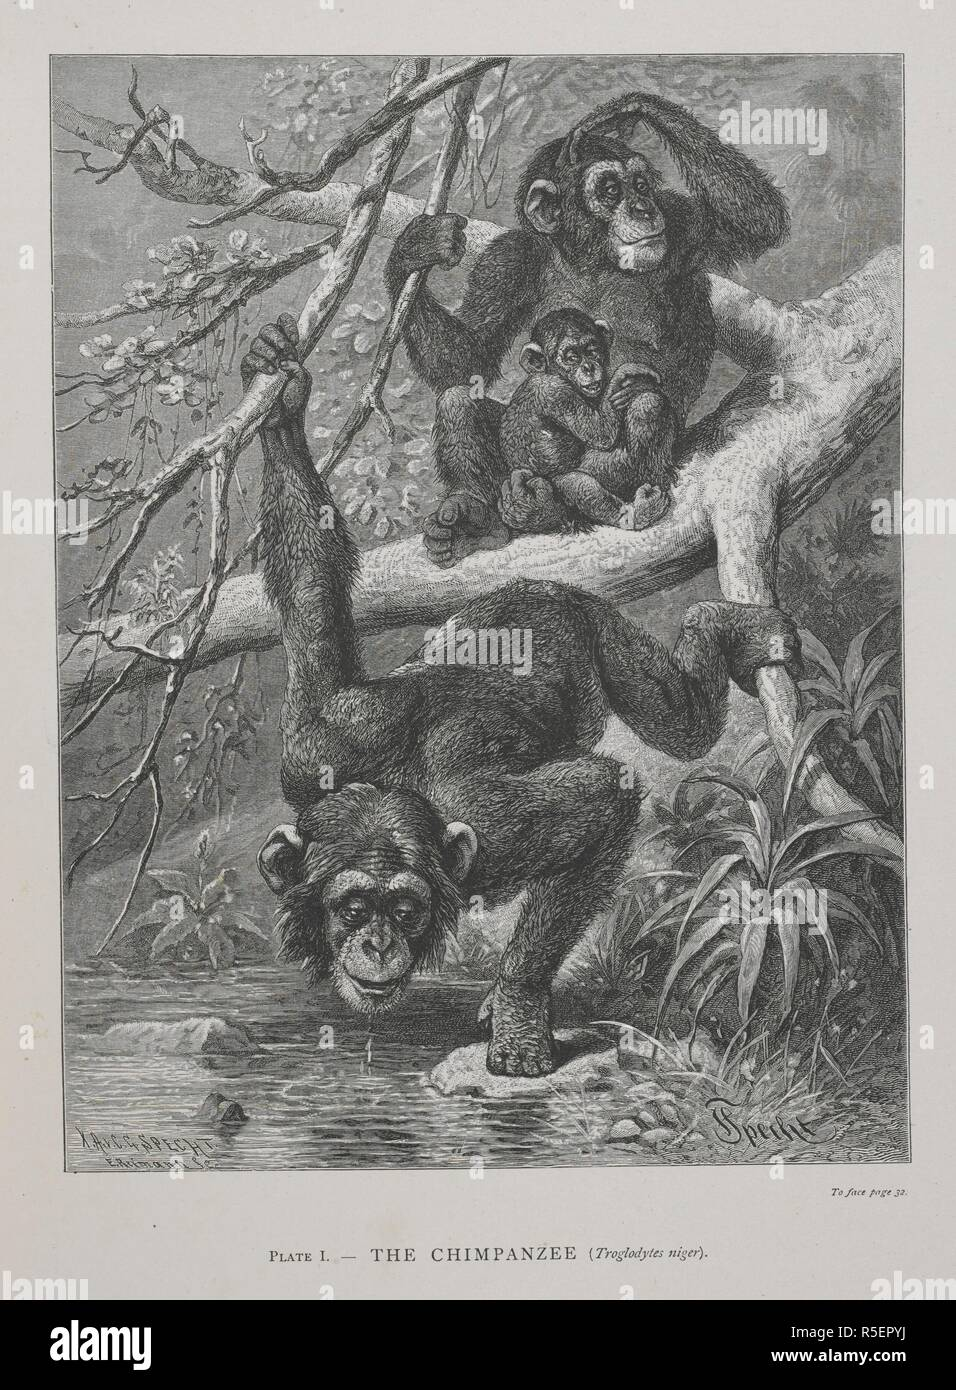 The Chimpanzee. The Geographical Distribution of Animals, with a study of the relations of living and extinct faunas as elucidating the past changes of the earth's surface. ... . London, 1876. Source: 07209.dd.1 plate 1. Author: WALLACE, ALFRED RUSSEL. - Stock Image